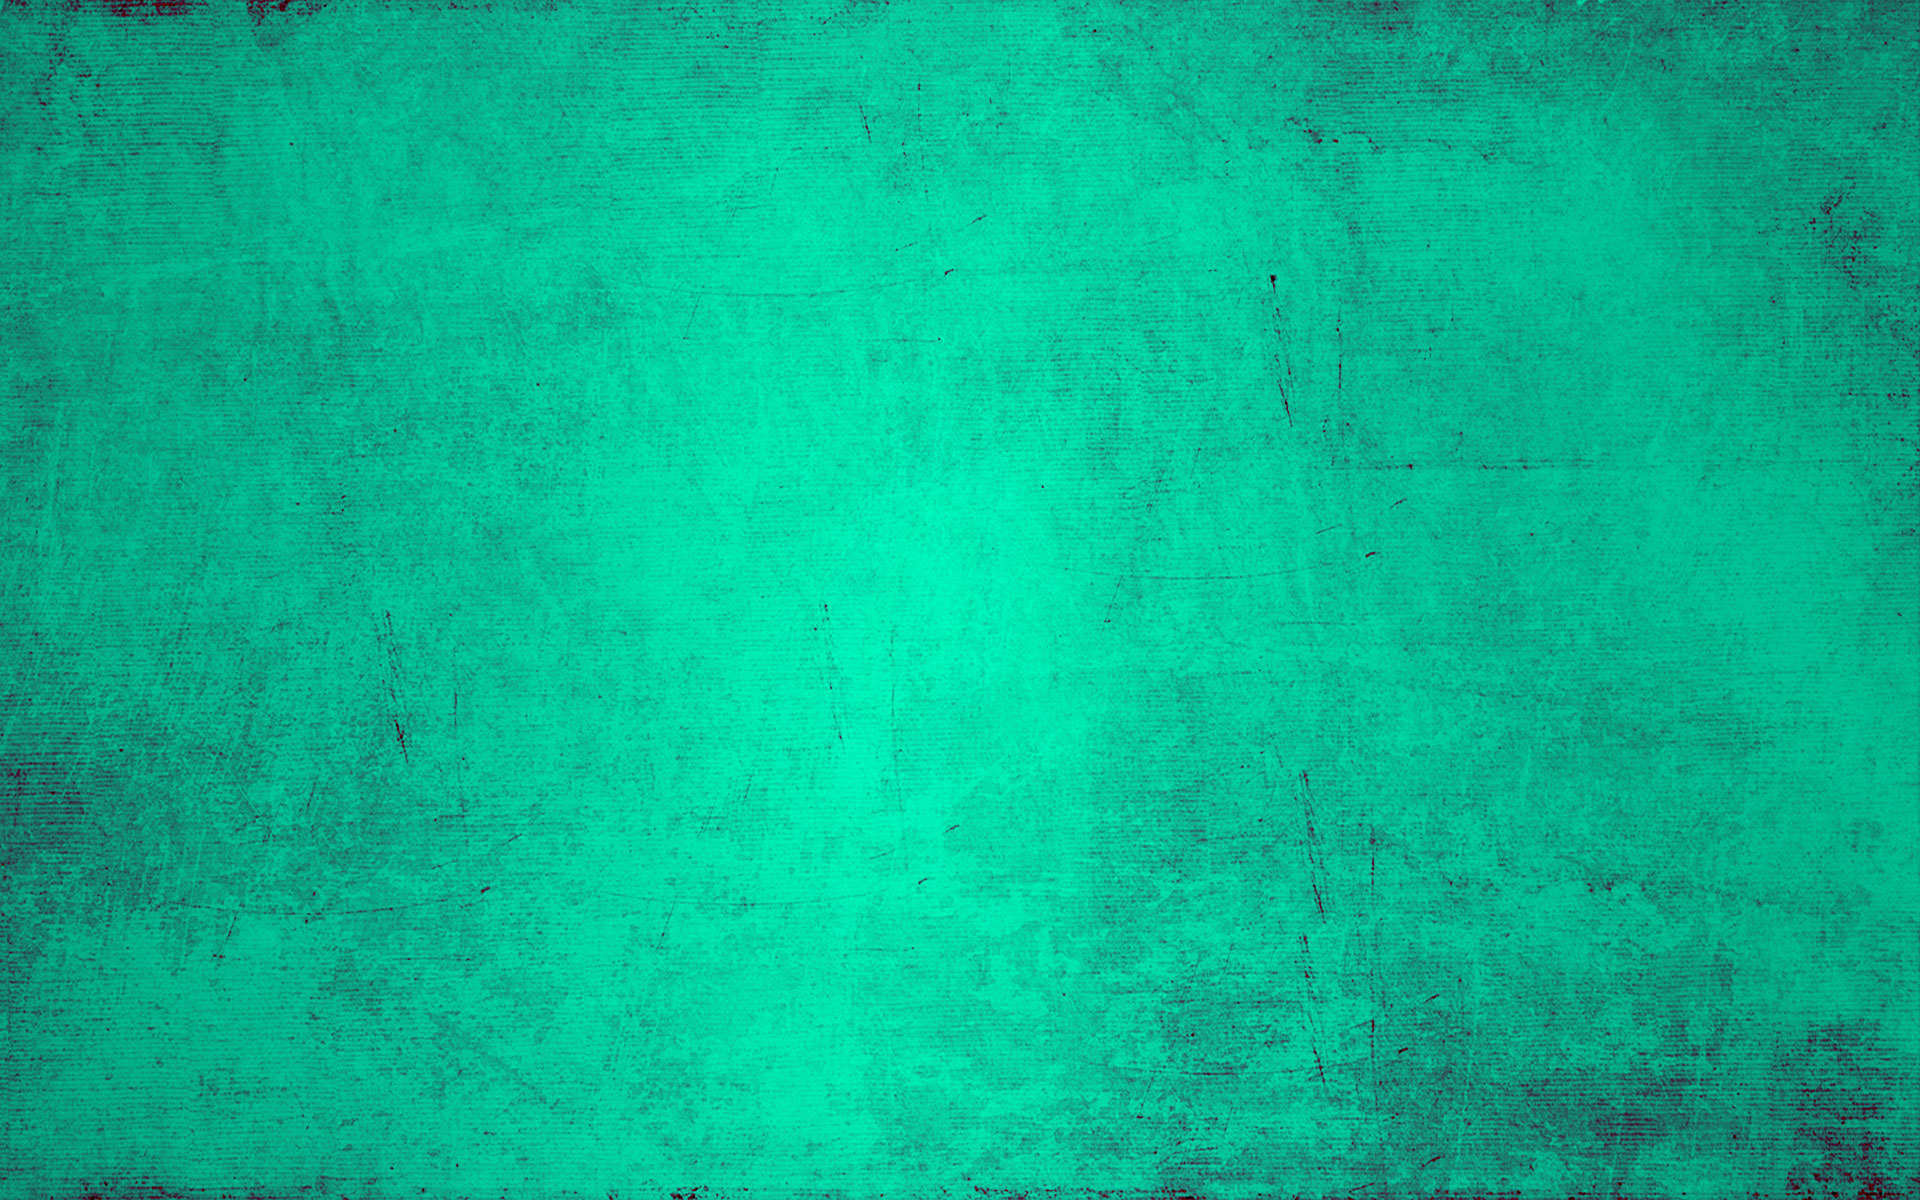 Turquoise wallpaper 6921 1920x1200 px hdwallsource turquoise wallpaper 6921 voltagebd Gallery